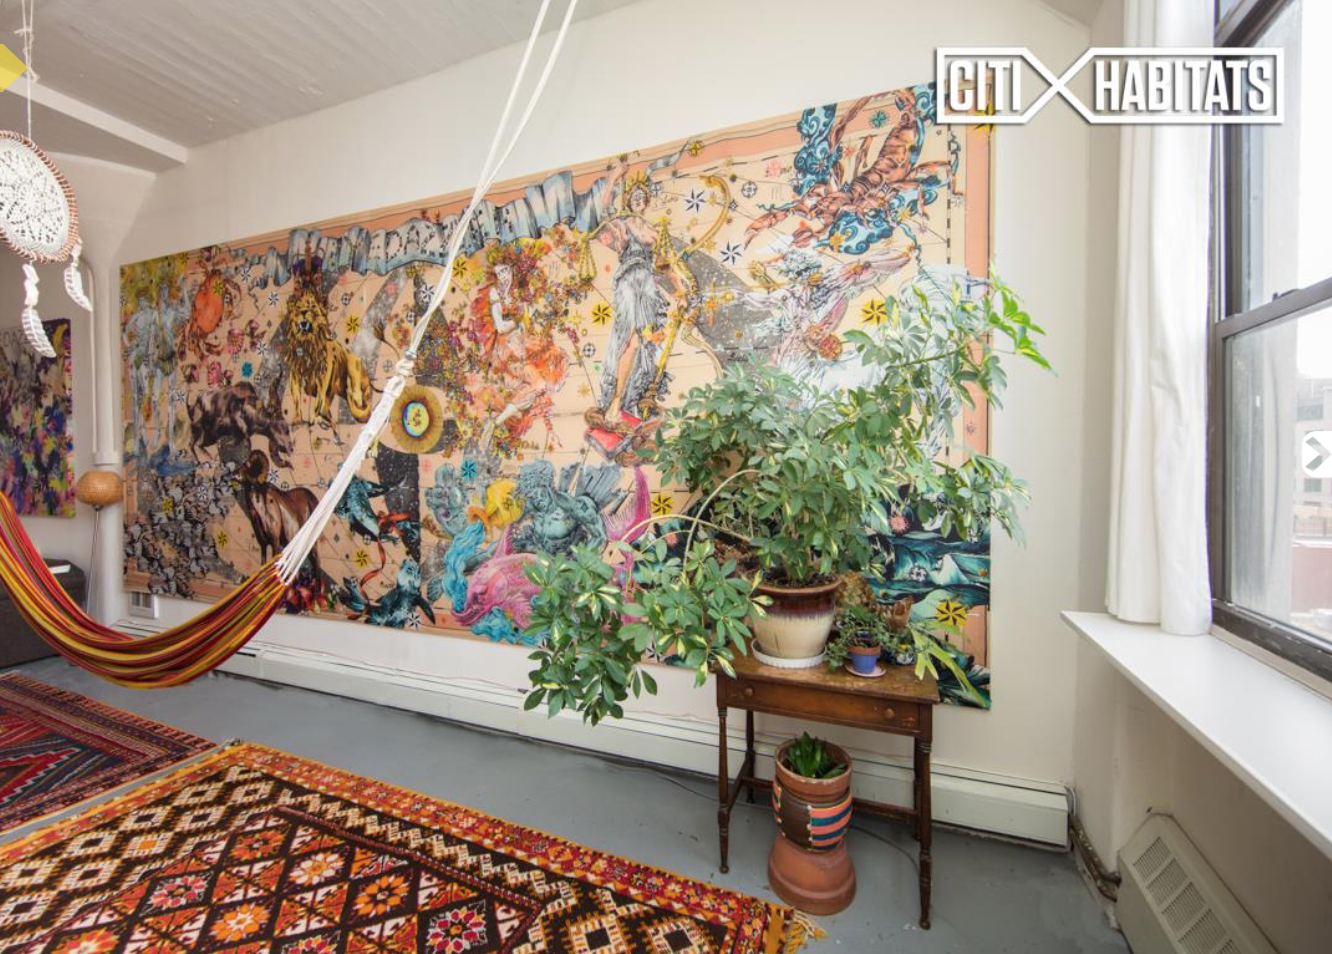 This Williamsburg loft rental comes with lots of art, if you